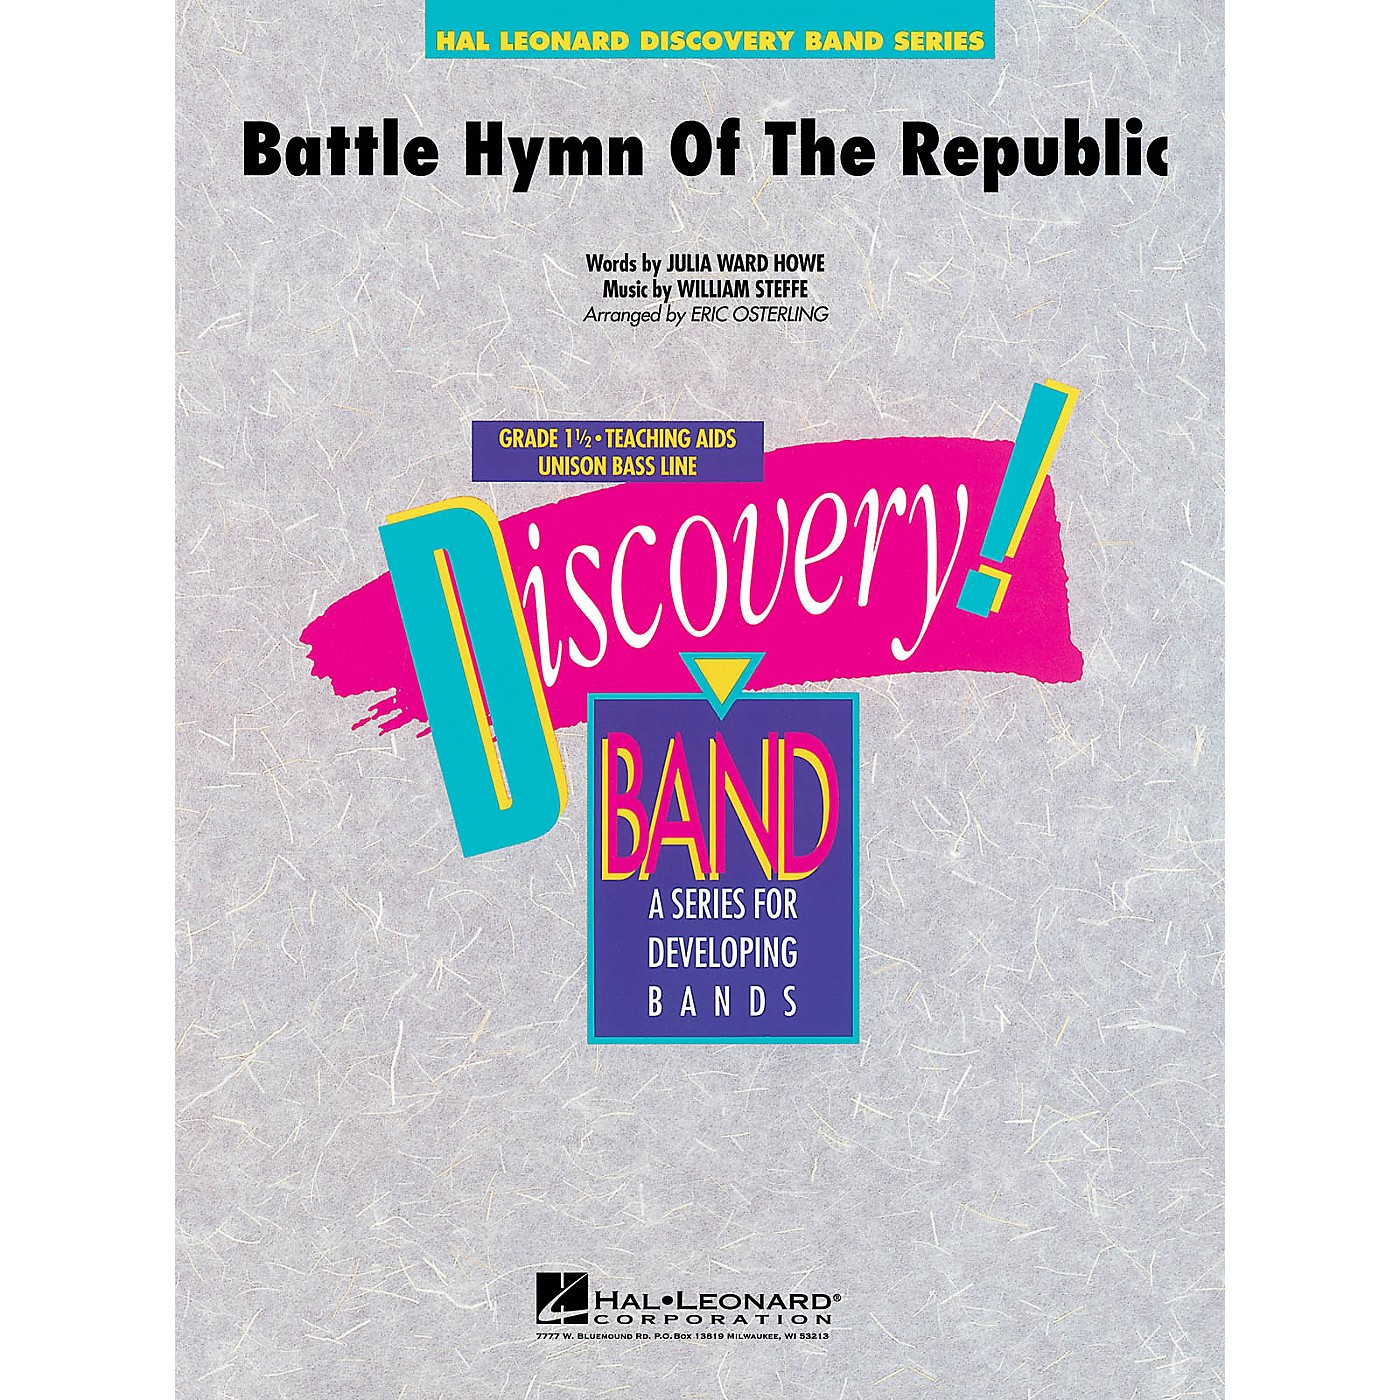 Hal Leonard Battle Hymn of the Republic Concert Band Level 1.5 Arranged by Eric Osterling thumbnail